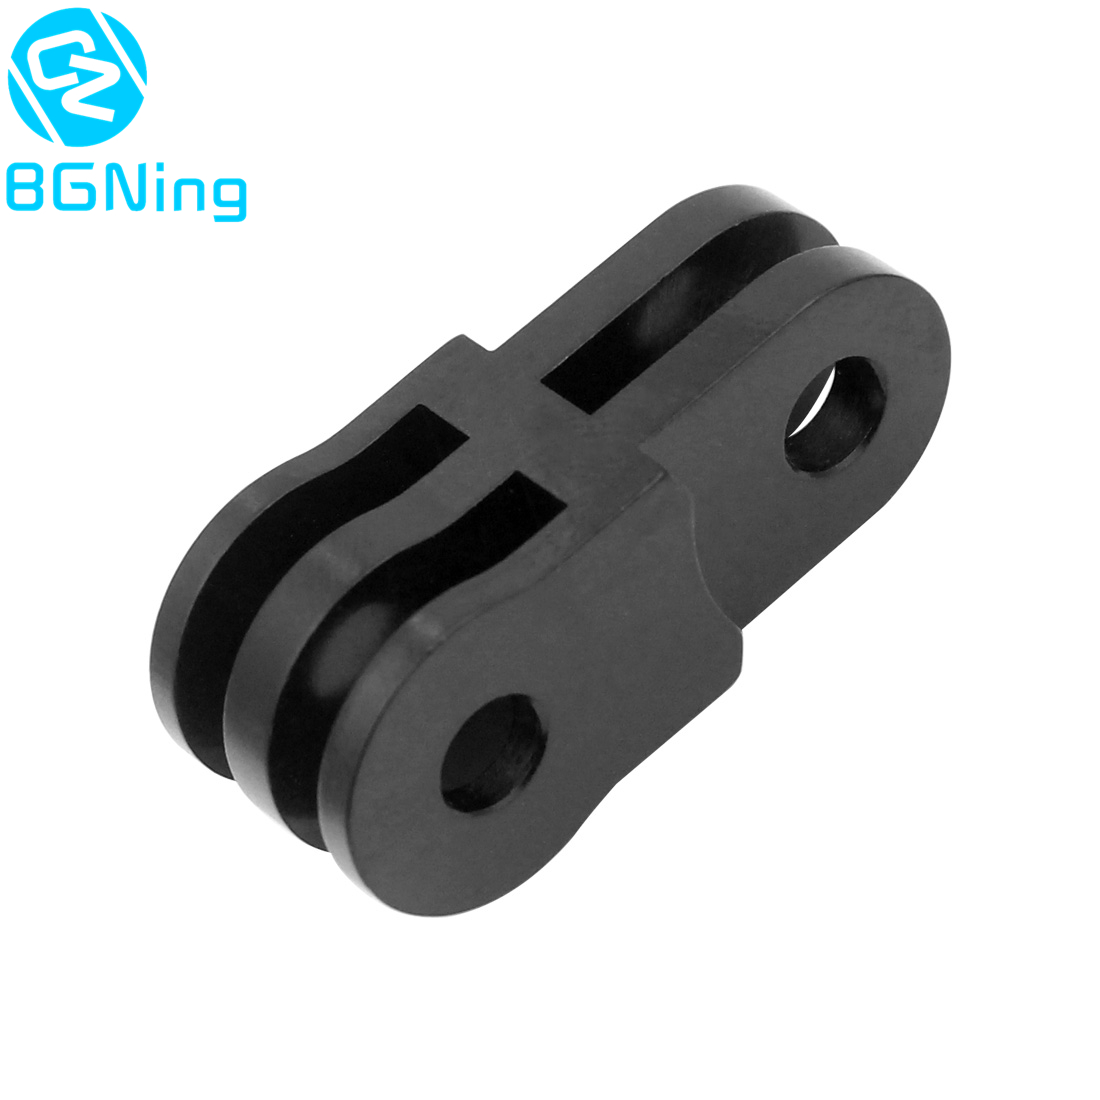 CNC Extension Activity Connector For 3-way Pivot Arm For Gopro Hero 6 5 4 /SJ4000 / Yi Action Camera Tripod Mount Adapter